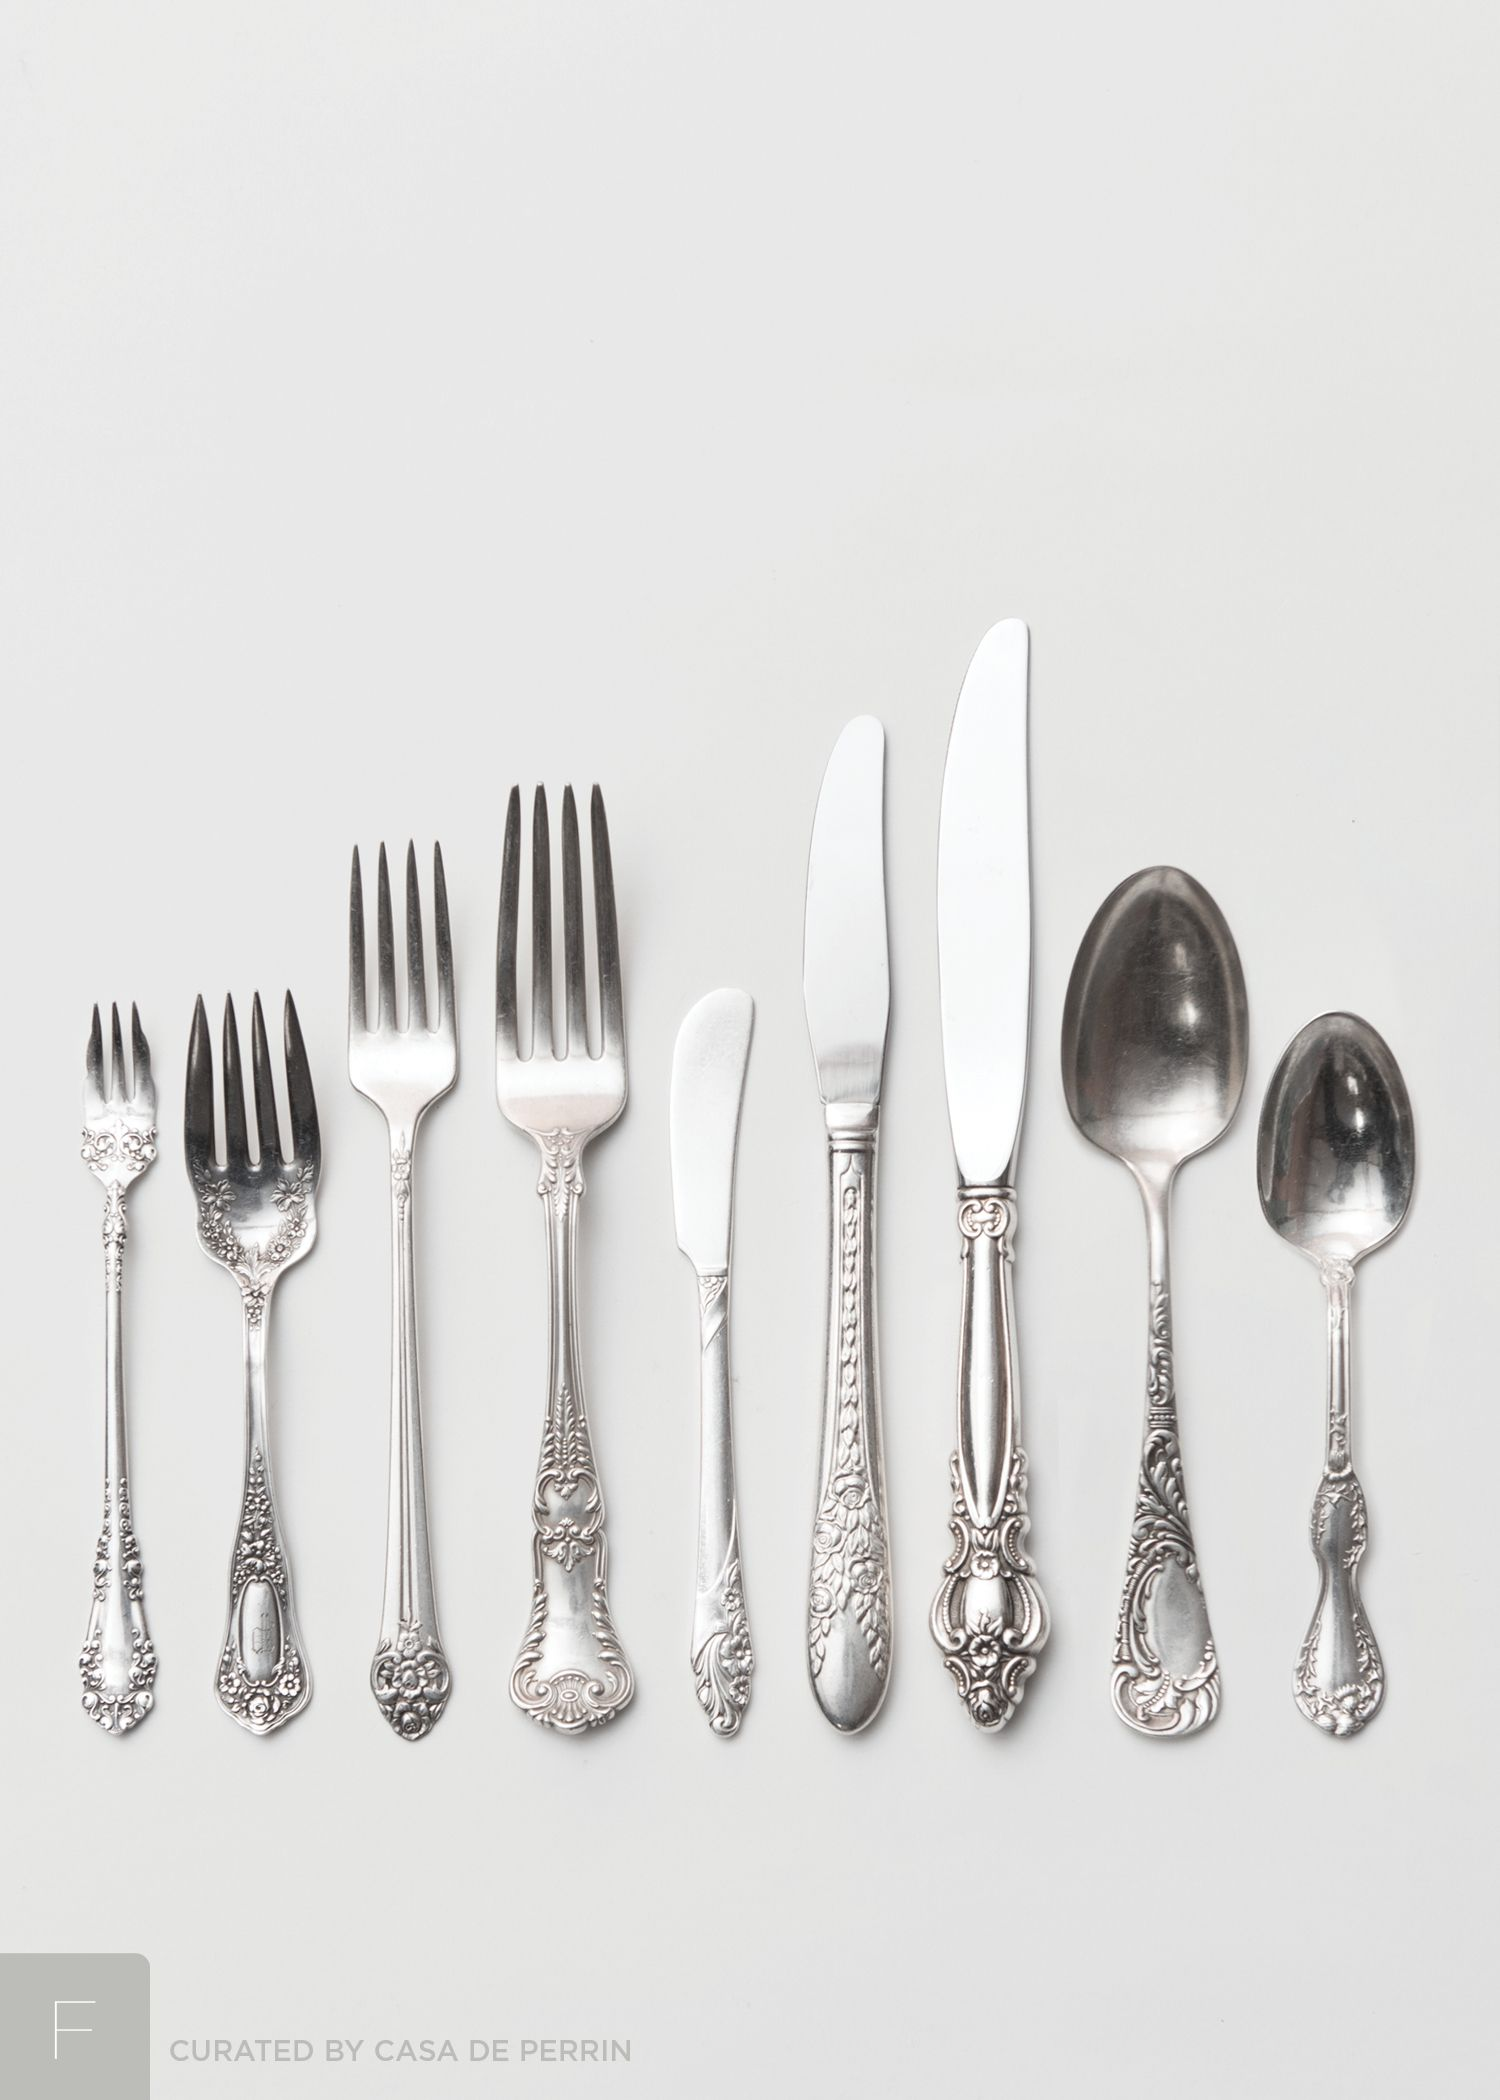 An Exquisite Curation Of Antique Sterling Silver And Silver Plate Flatware